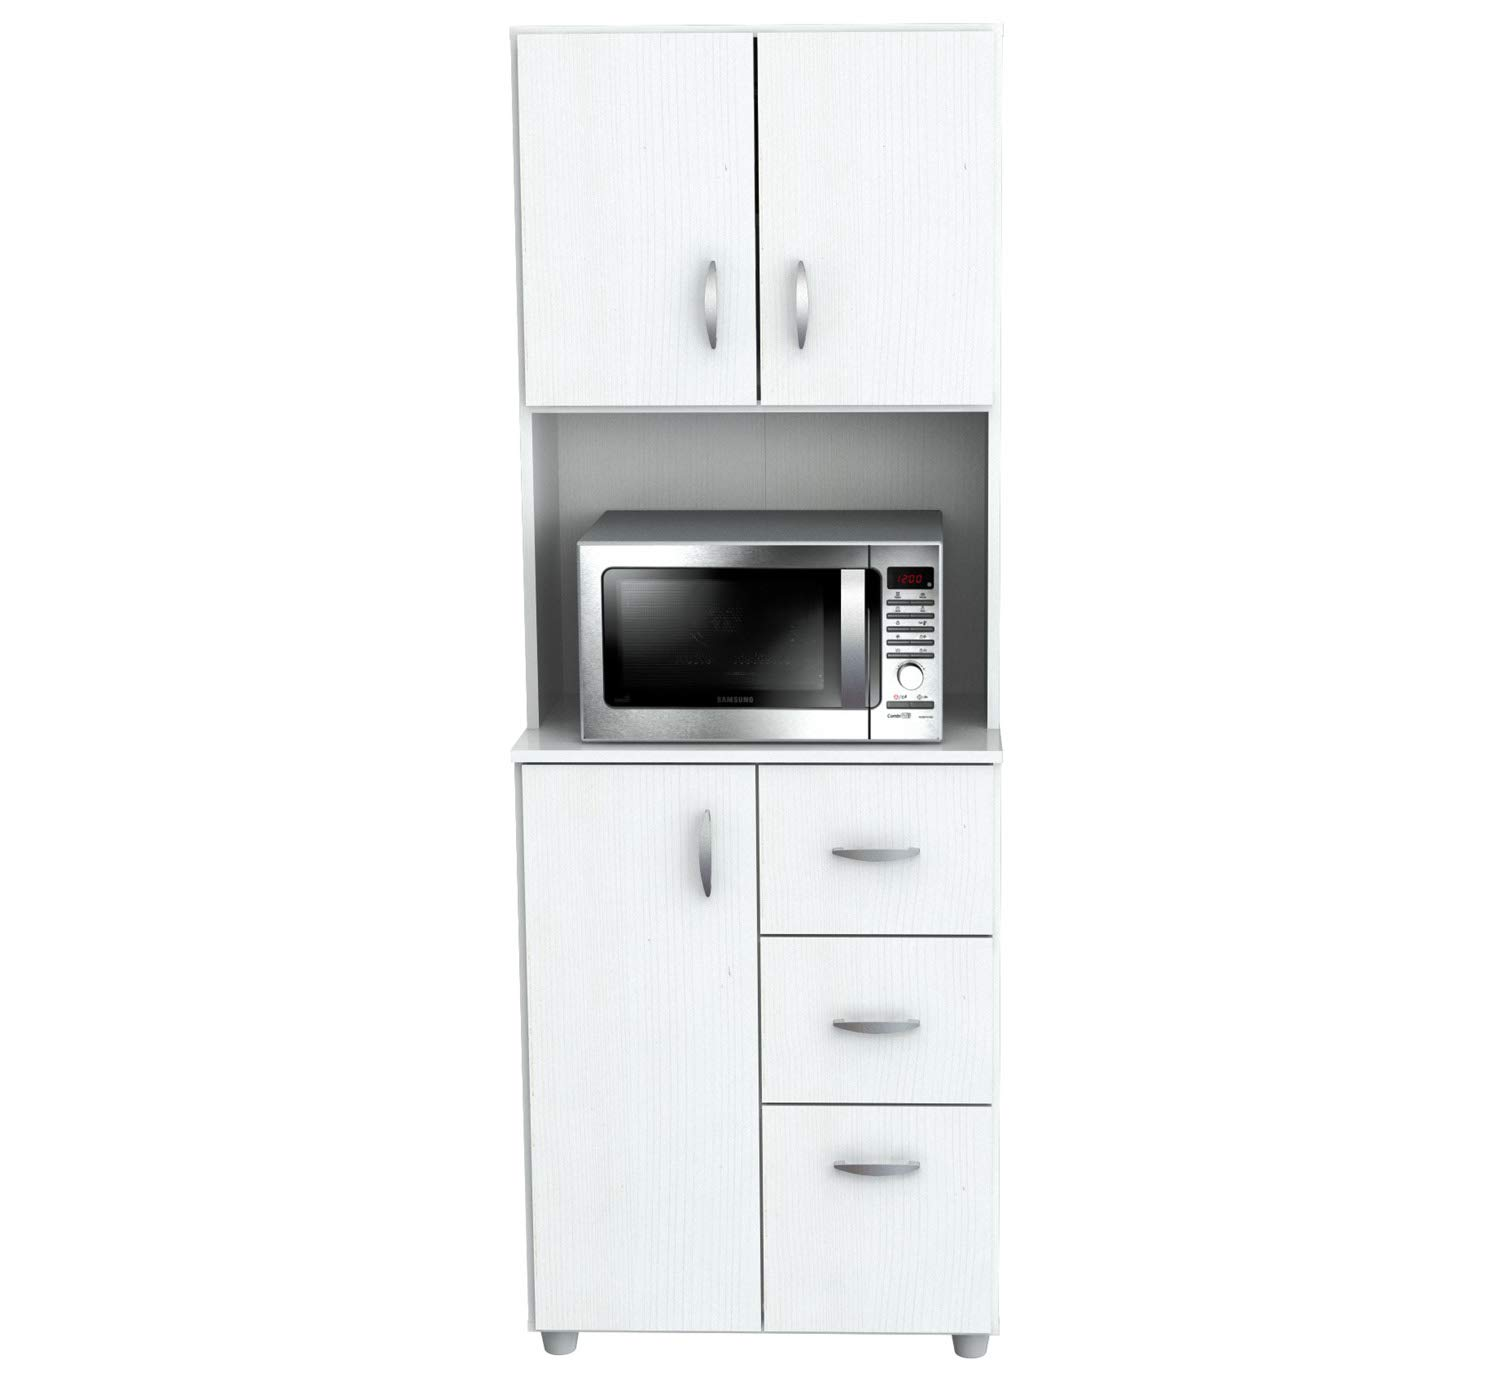 66'' Kitchen Pantry - Contemporary Tall Microwave Stand - Modern Storage Organizer with 3 Doors, Open Shelf and 3 Drawers by Simple Interior